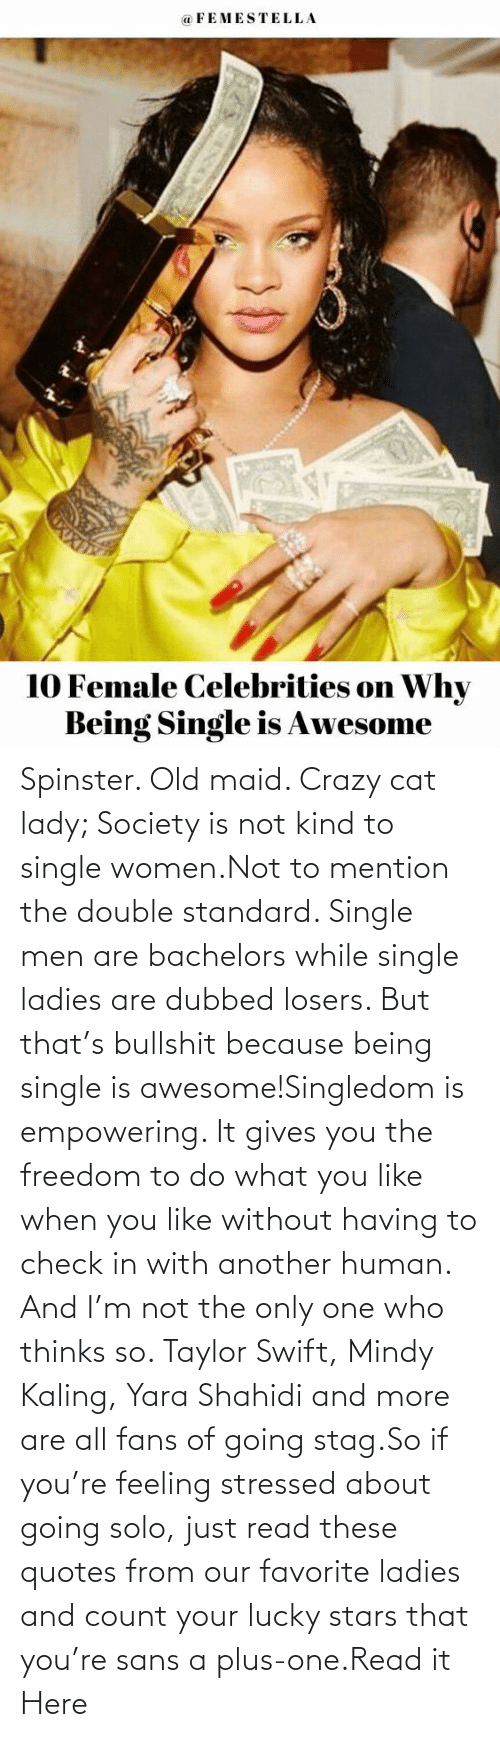 men: Spinster. Old maid. Crazy cat lady; Society is not kind to single women.Not to mention the double standard. Single men are bachelors while single ladies are dubbed losers. But that's bullshit because being single is awesome!Singledom is empowering. It gives you the freedom to do what you like when you like without having to check in with another human. And I'm not the only one who thinks so. Taylor Swift, Mindy Kaling, Yara Shahidi and more are all fans of going stag.So if you're feeling stressed about going solo, just read these quotes from our favorite ladies and count your lucky stars that you're sans a plus-one.Read it Here